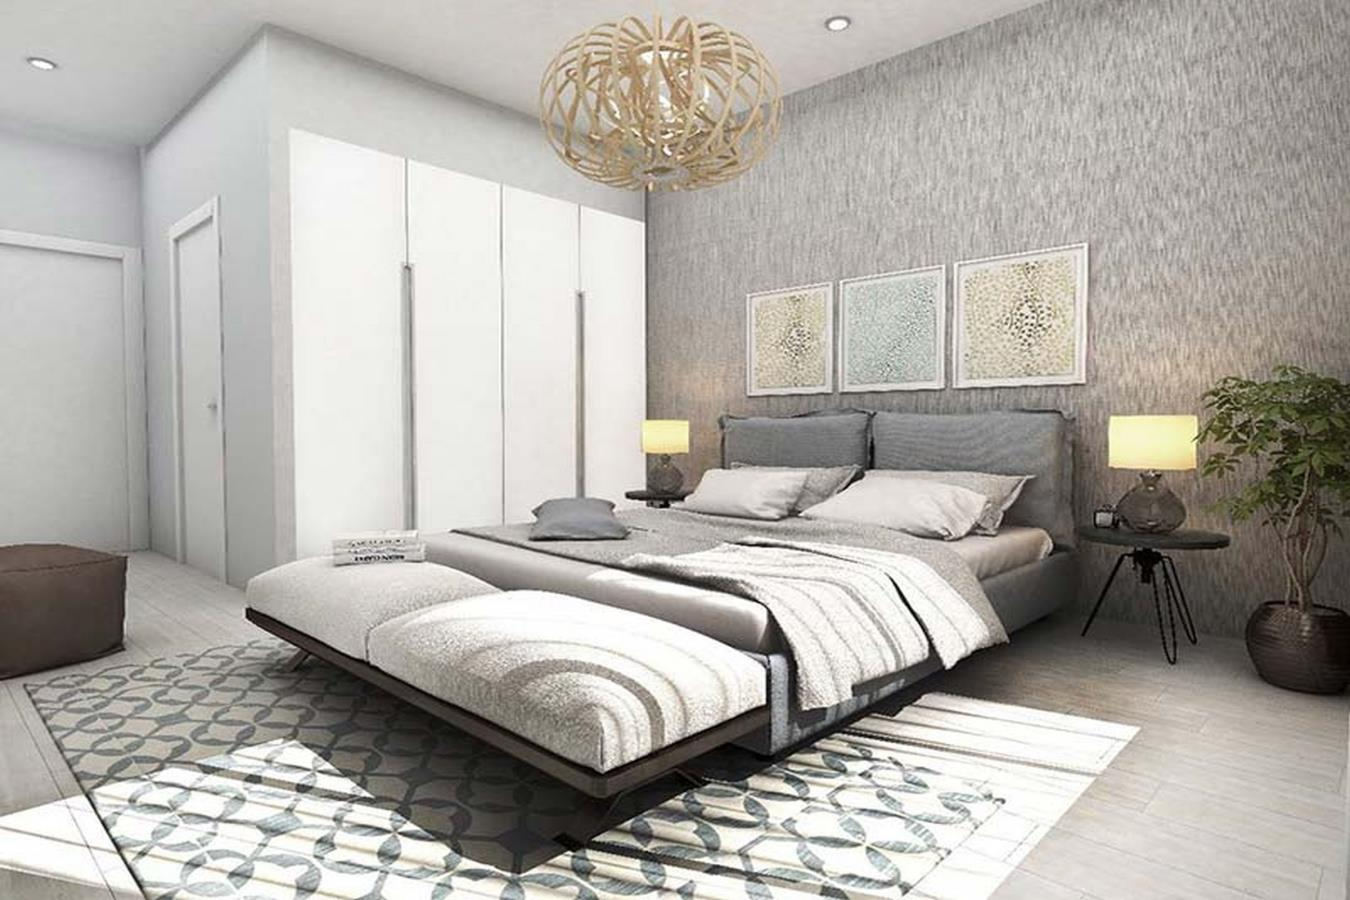 Best Per Square Feet Price With Payment Plan